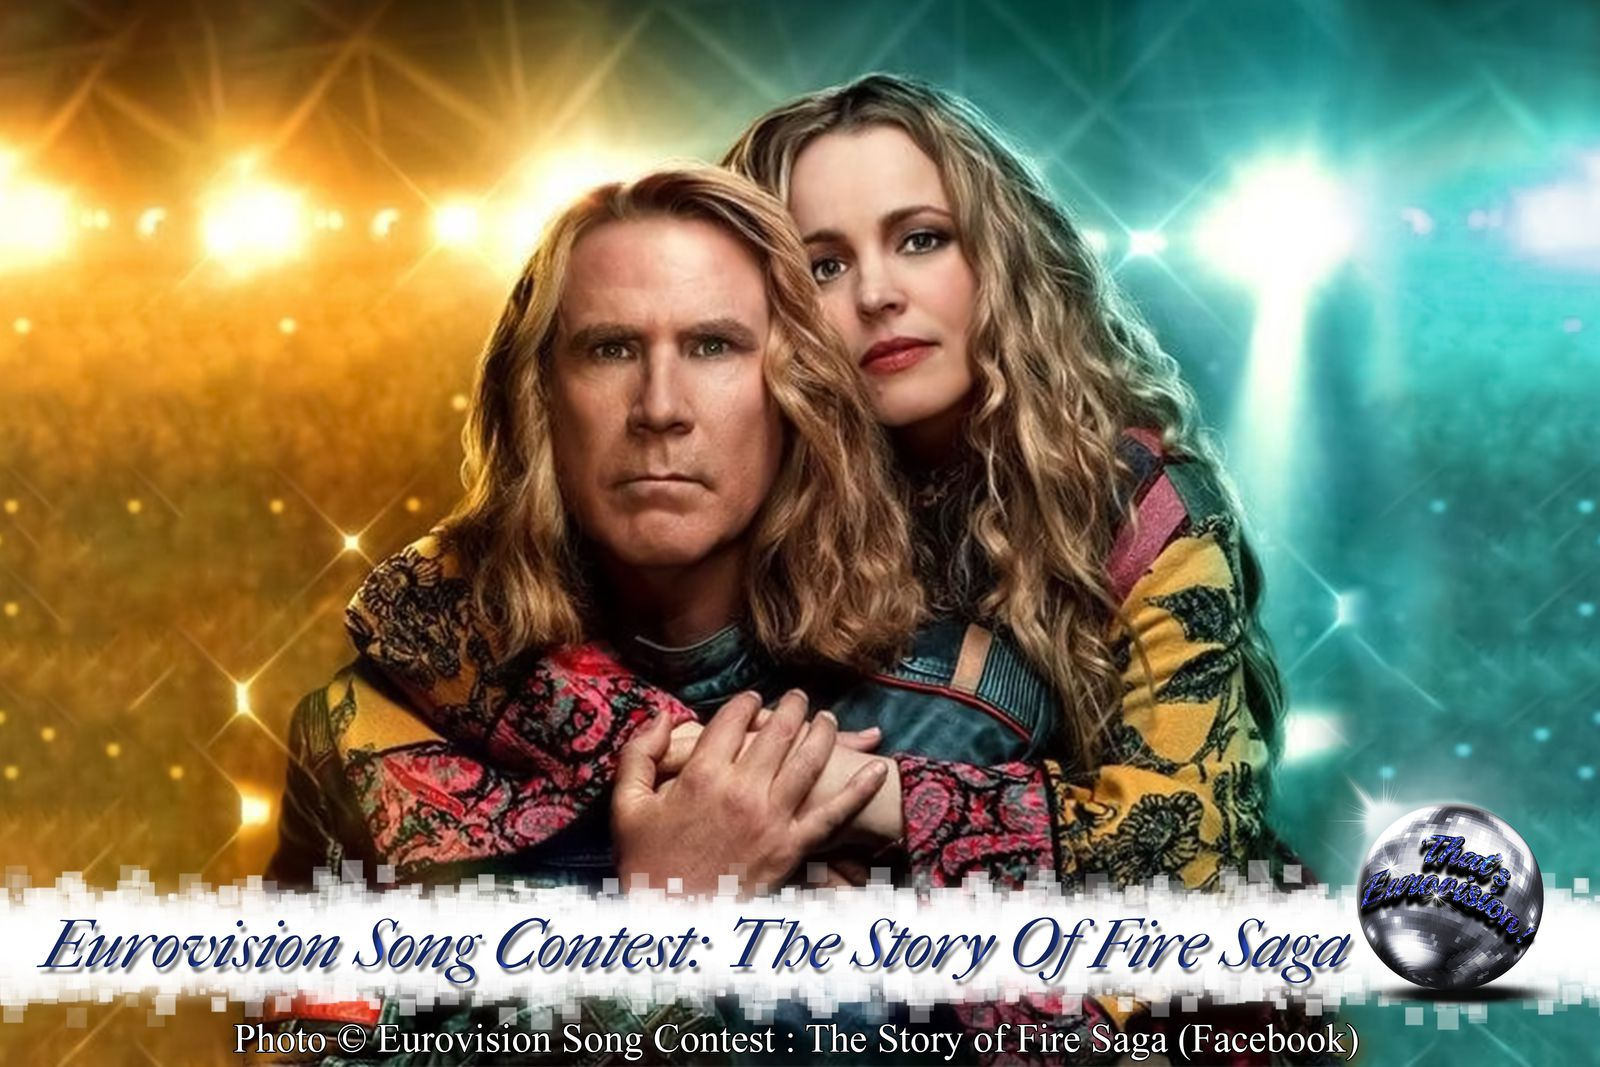 Eurovision Song Contest : The Story of Fire Saga